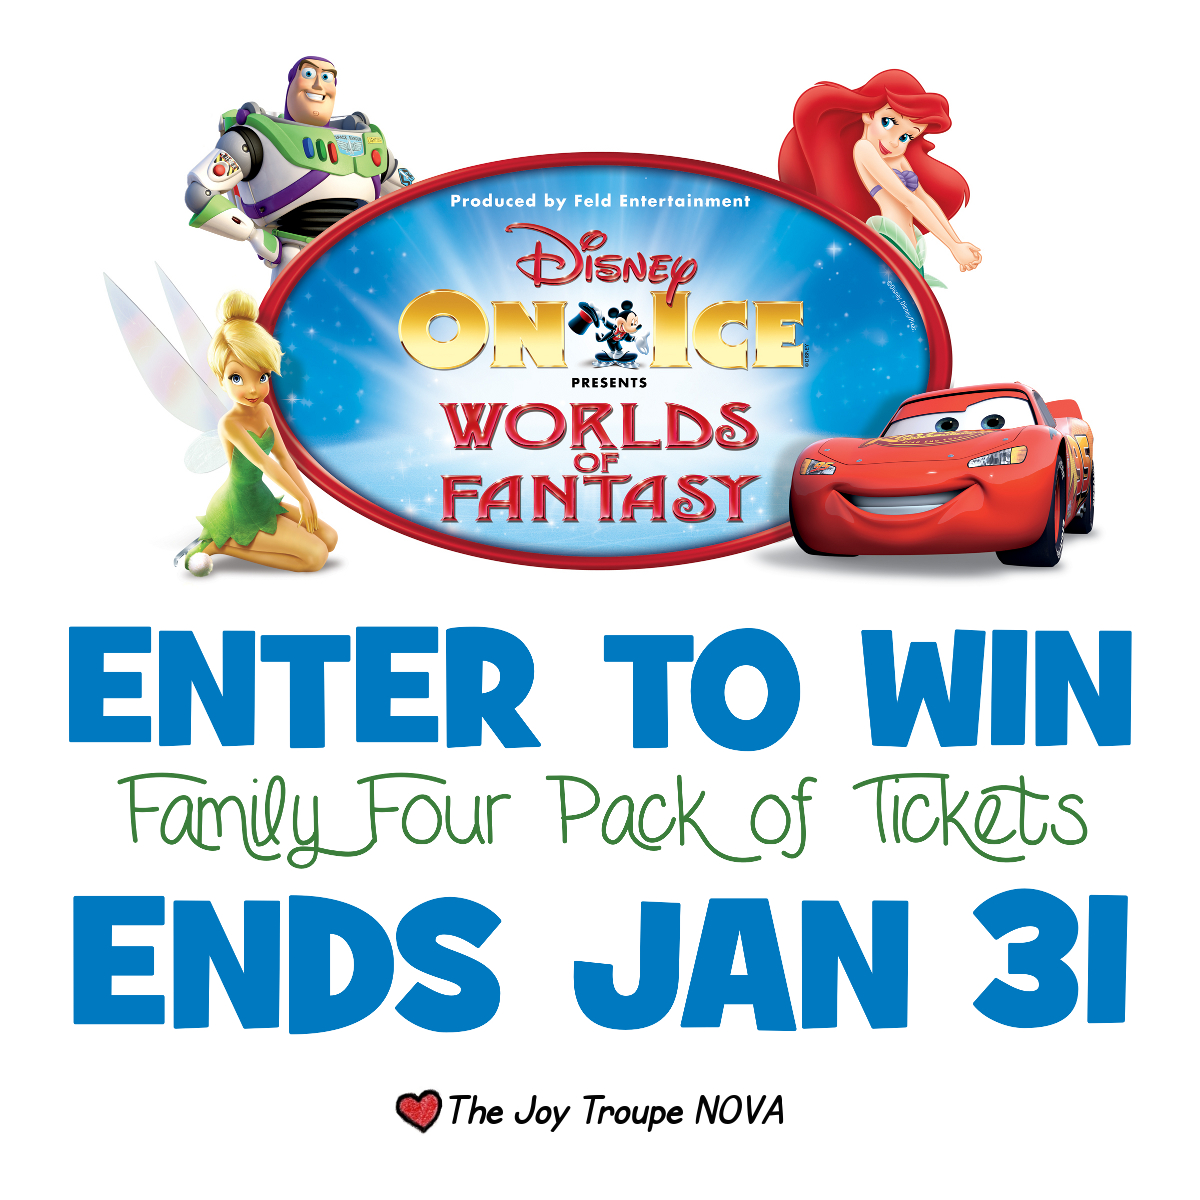 Enter to win four tickets to Disney on Ice Worlds of Fantasy ends 1/31